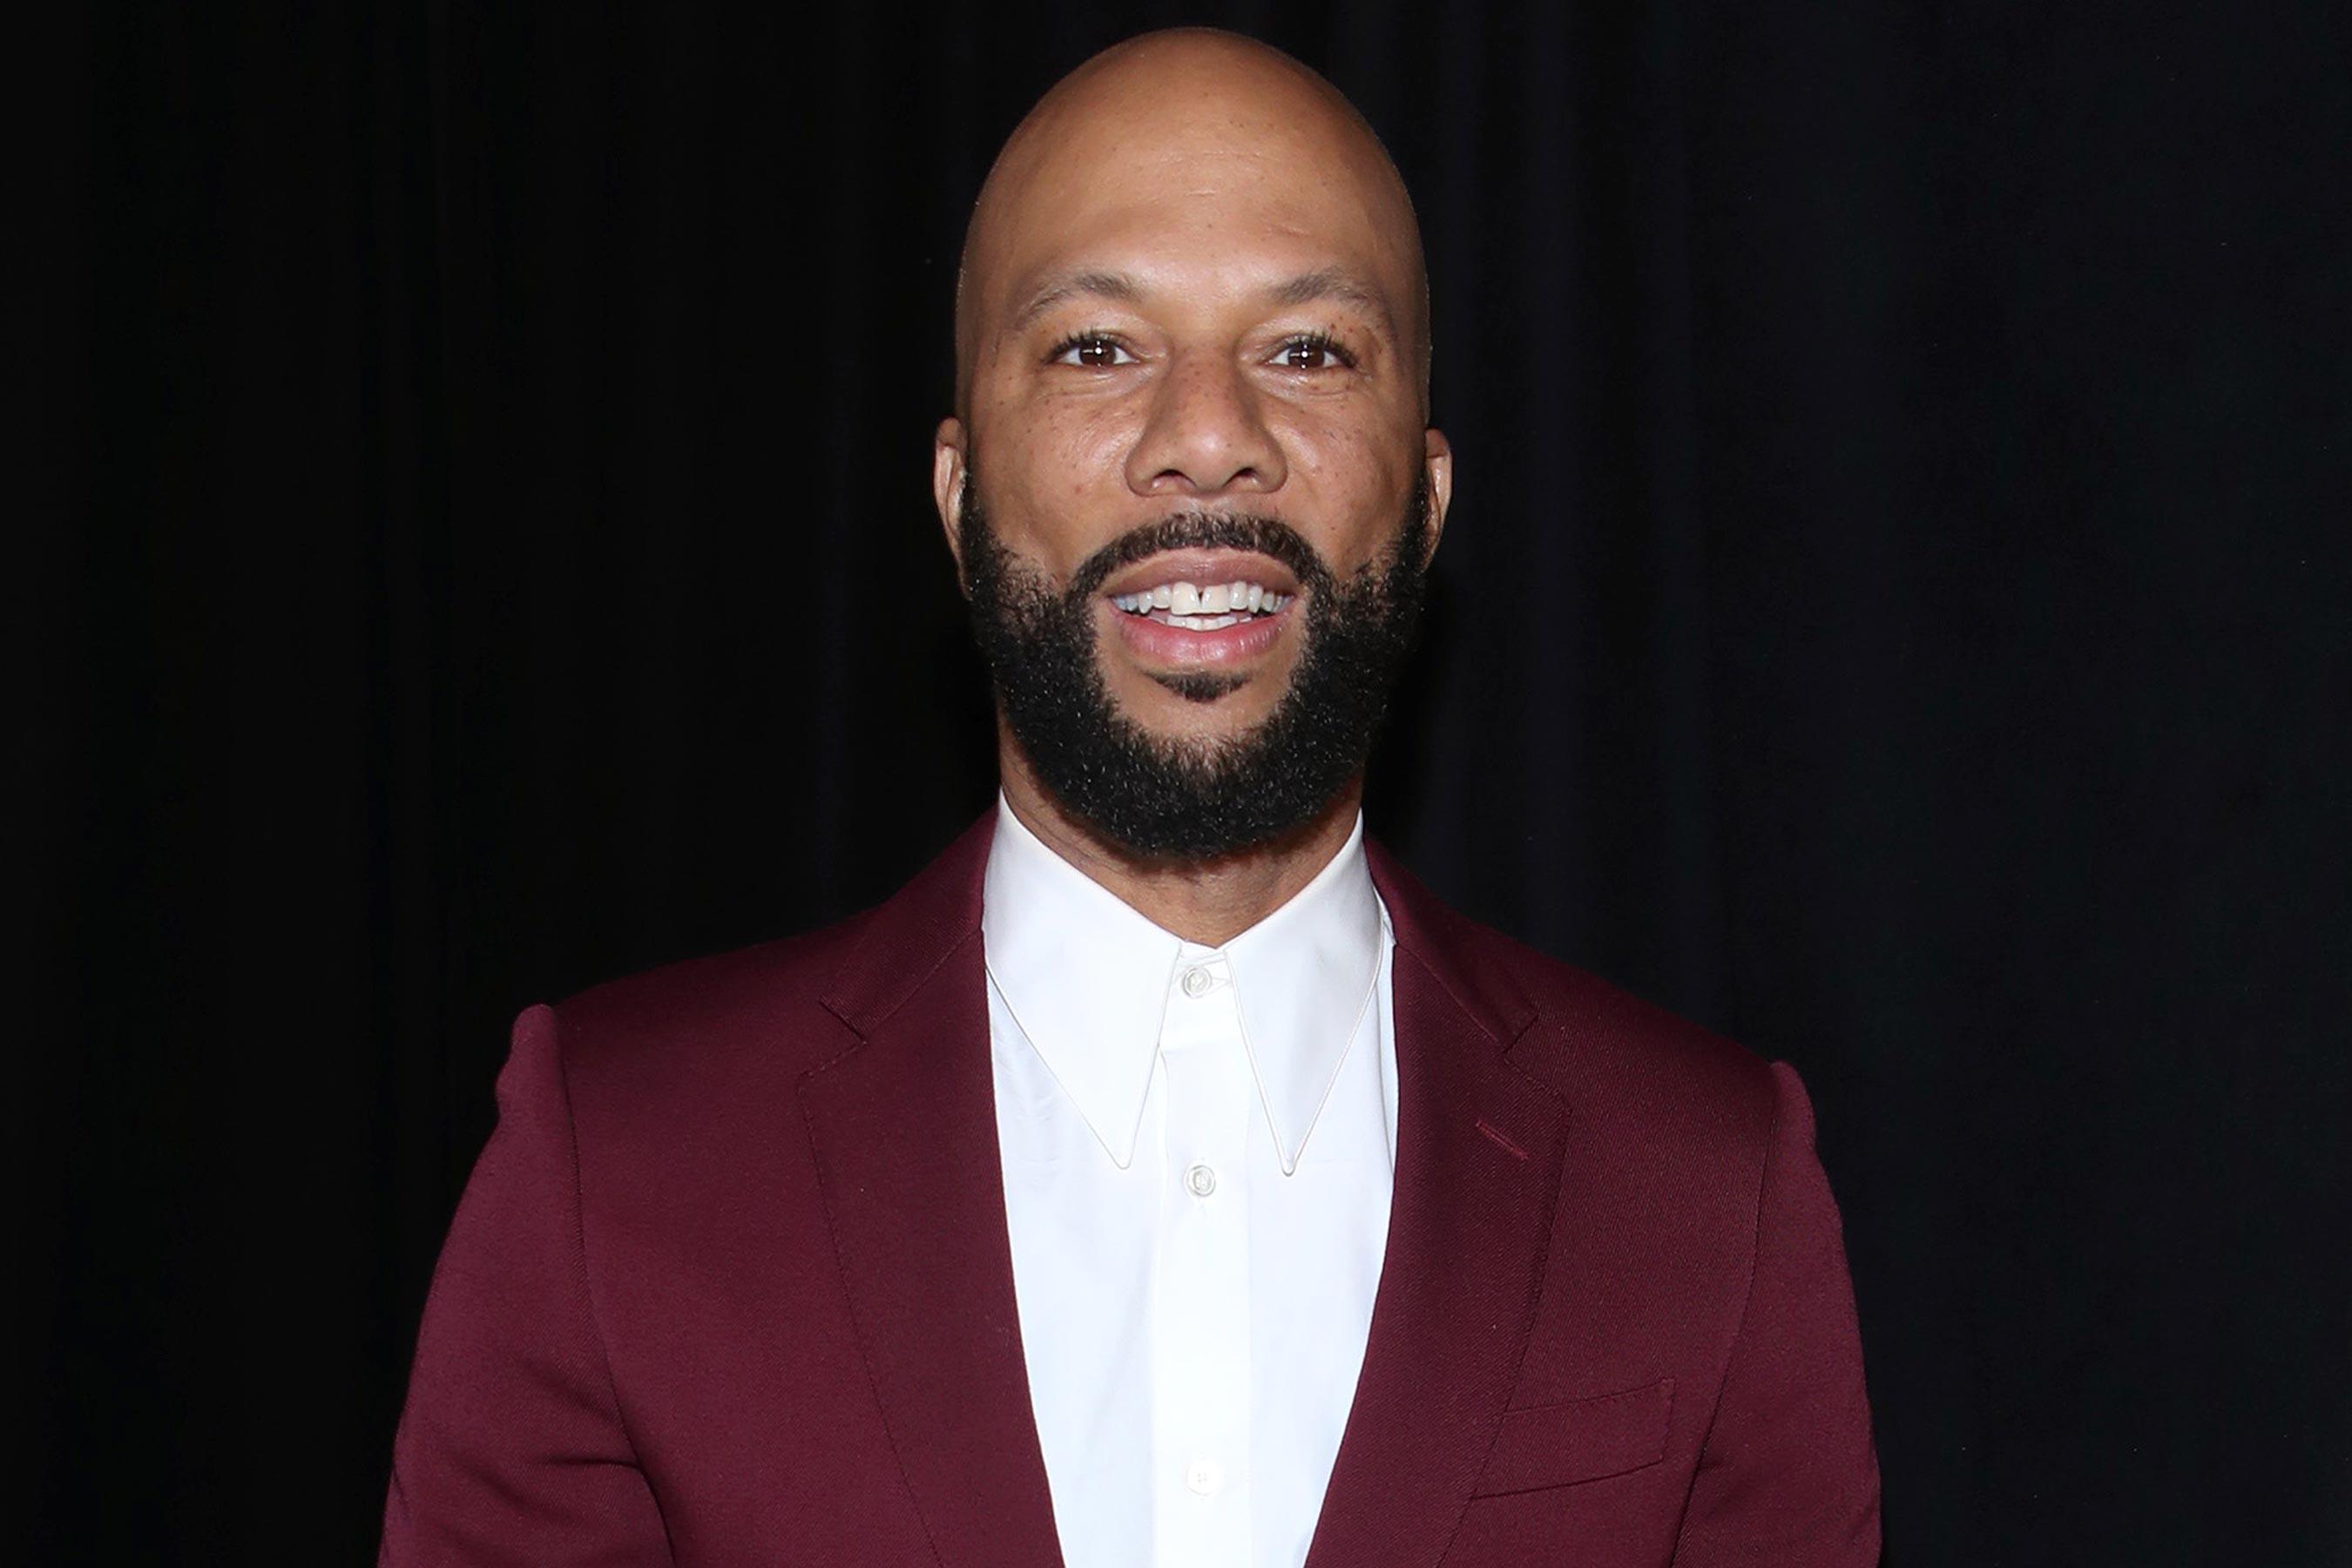 US actor, Common reveals he was molested as a child